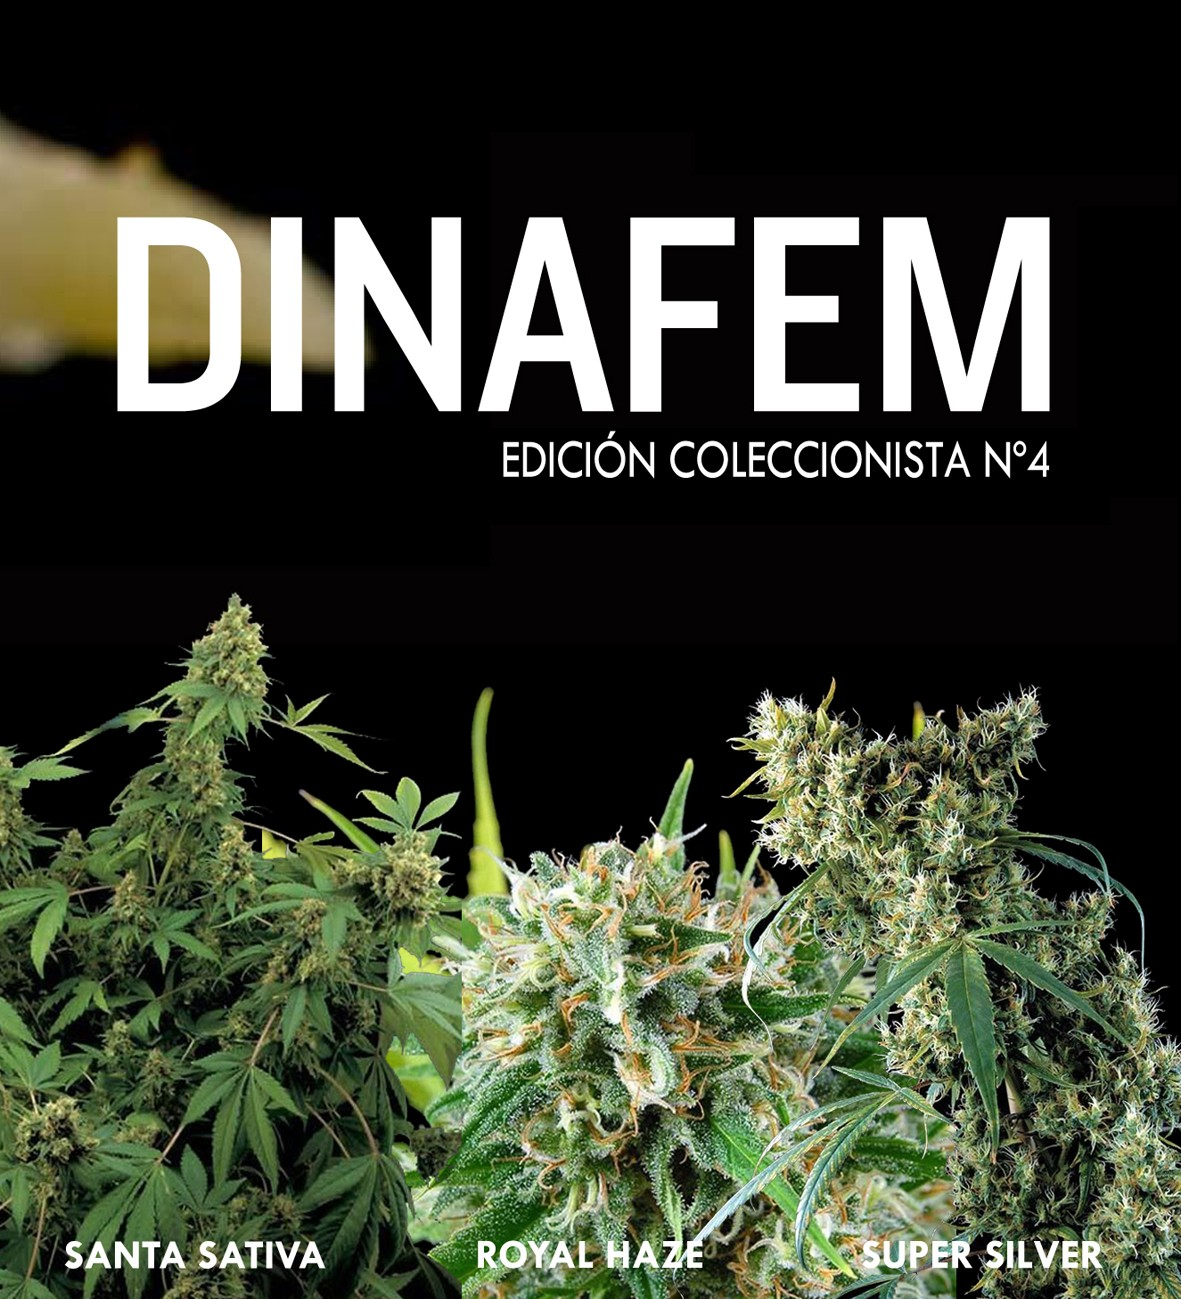 Dinafem collector #4 6 seeds